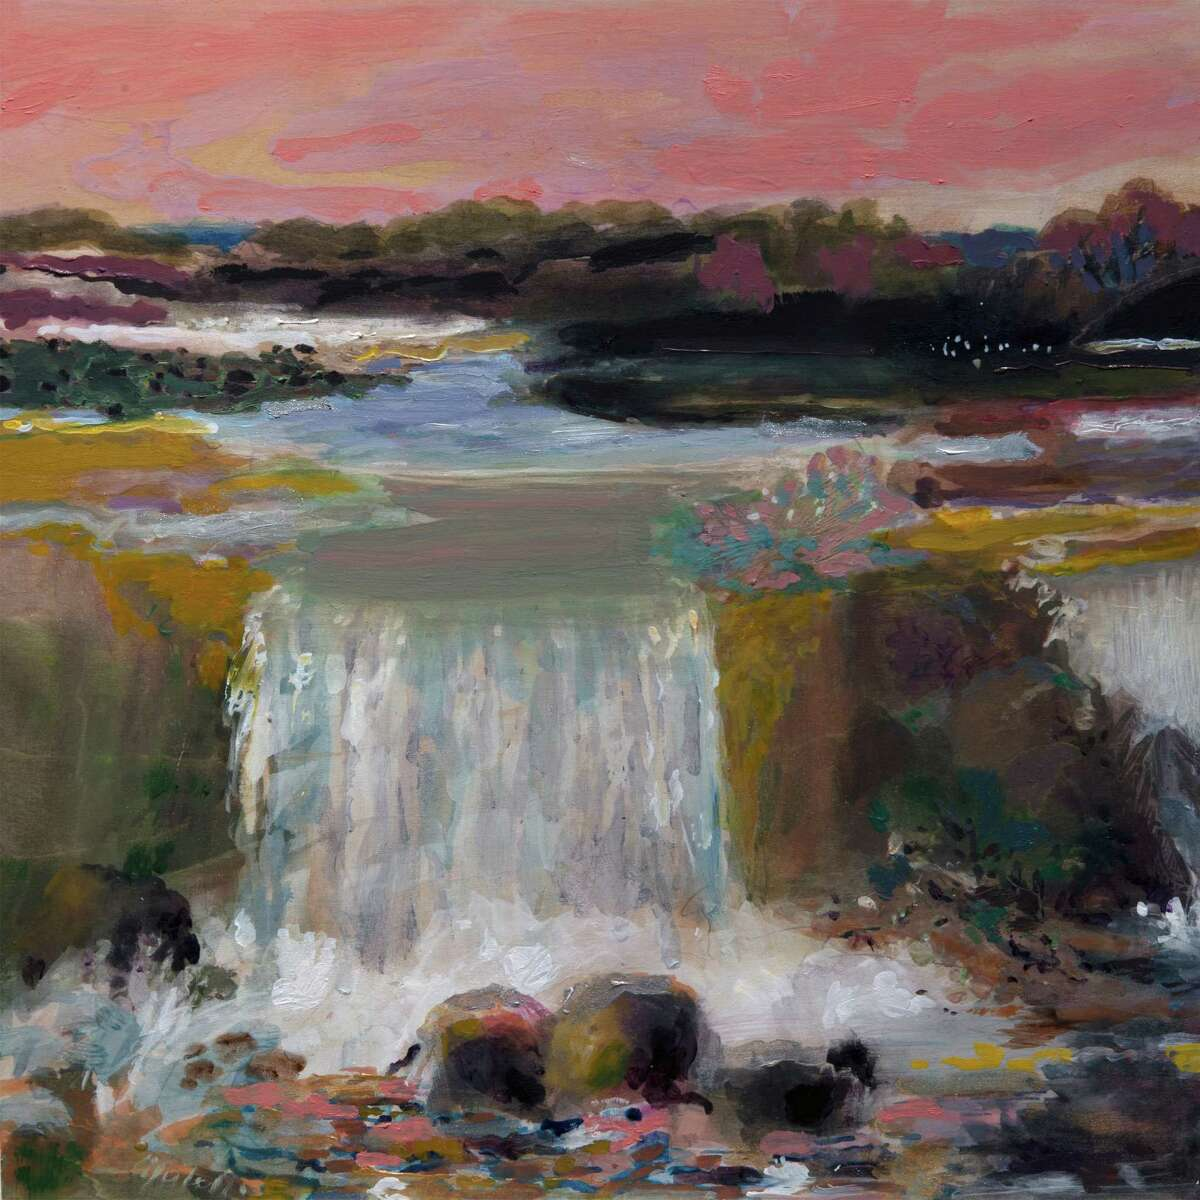 A piece by Alberta Cifolelli, of Westport, is one of the 10-by-10-inch artworks available at the annual Signed, Sealed & Delivered event at the Silvermine Arts Center in New Canaan on Oct. 5.